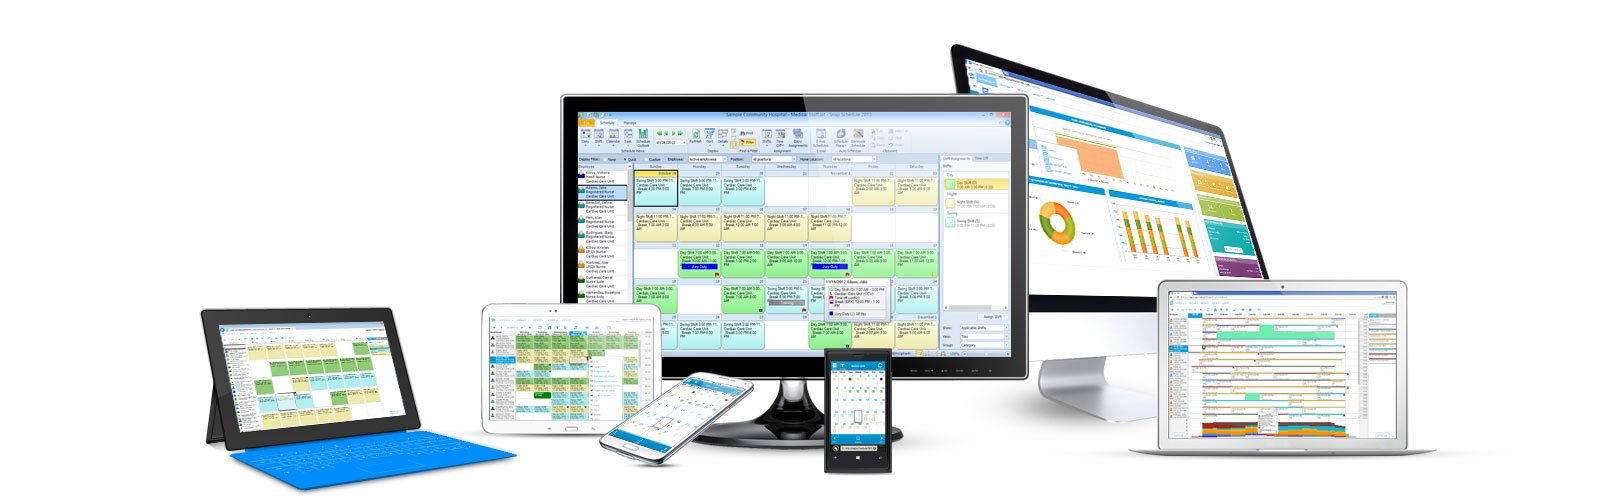 Shift scheduling software for mobile workforce